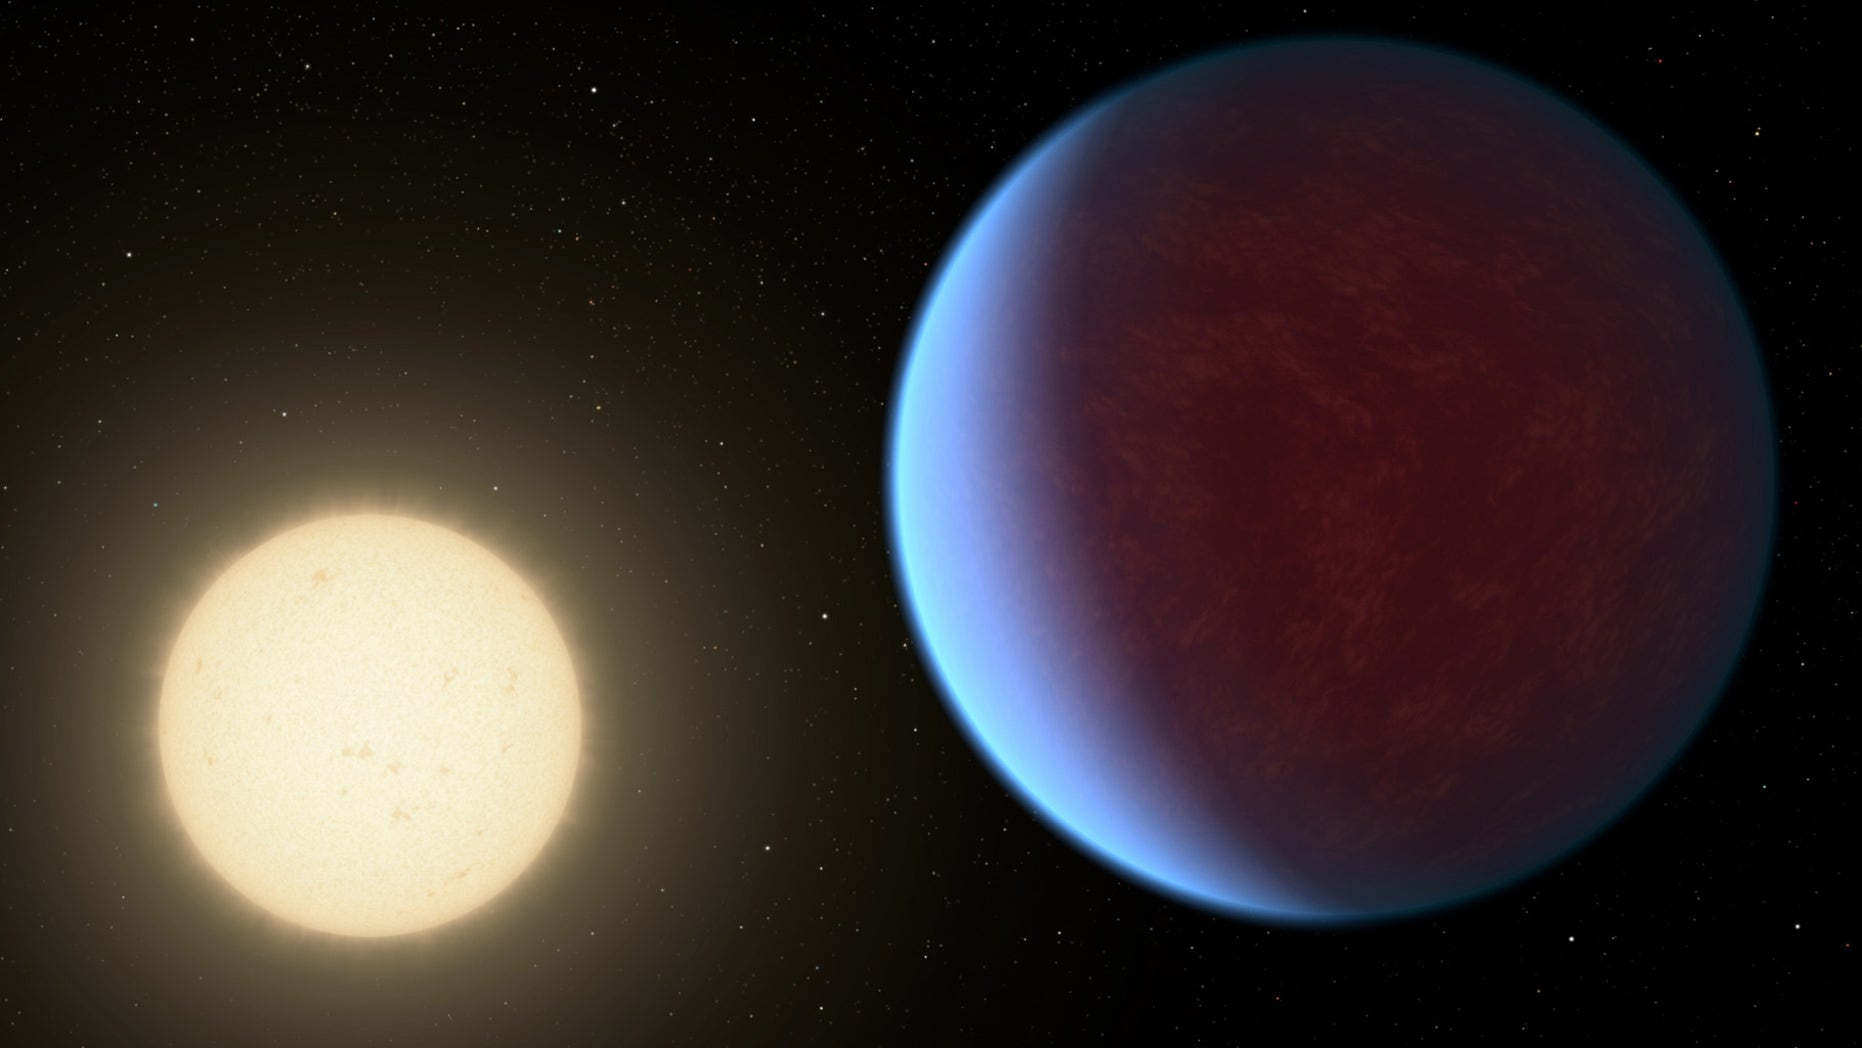 The searing-hot planet 55 Cancri e likely has a thick atmosphere with a similar composition to that of Earth, a new study suggests.